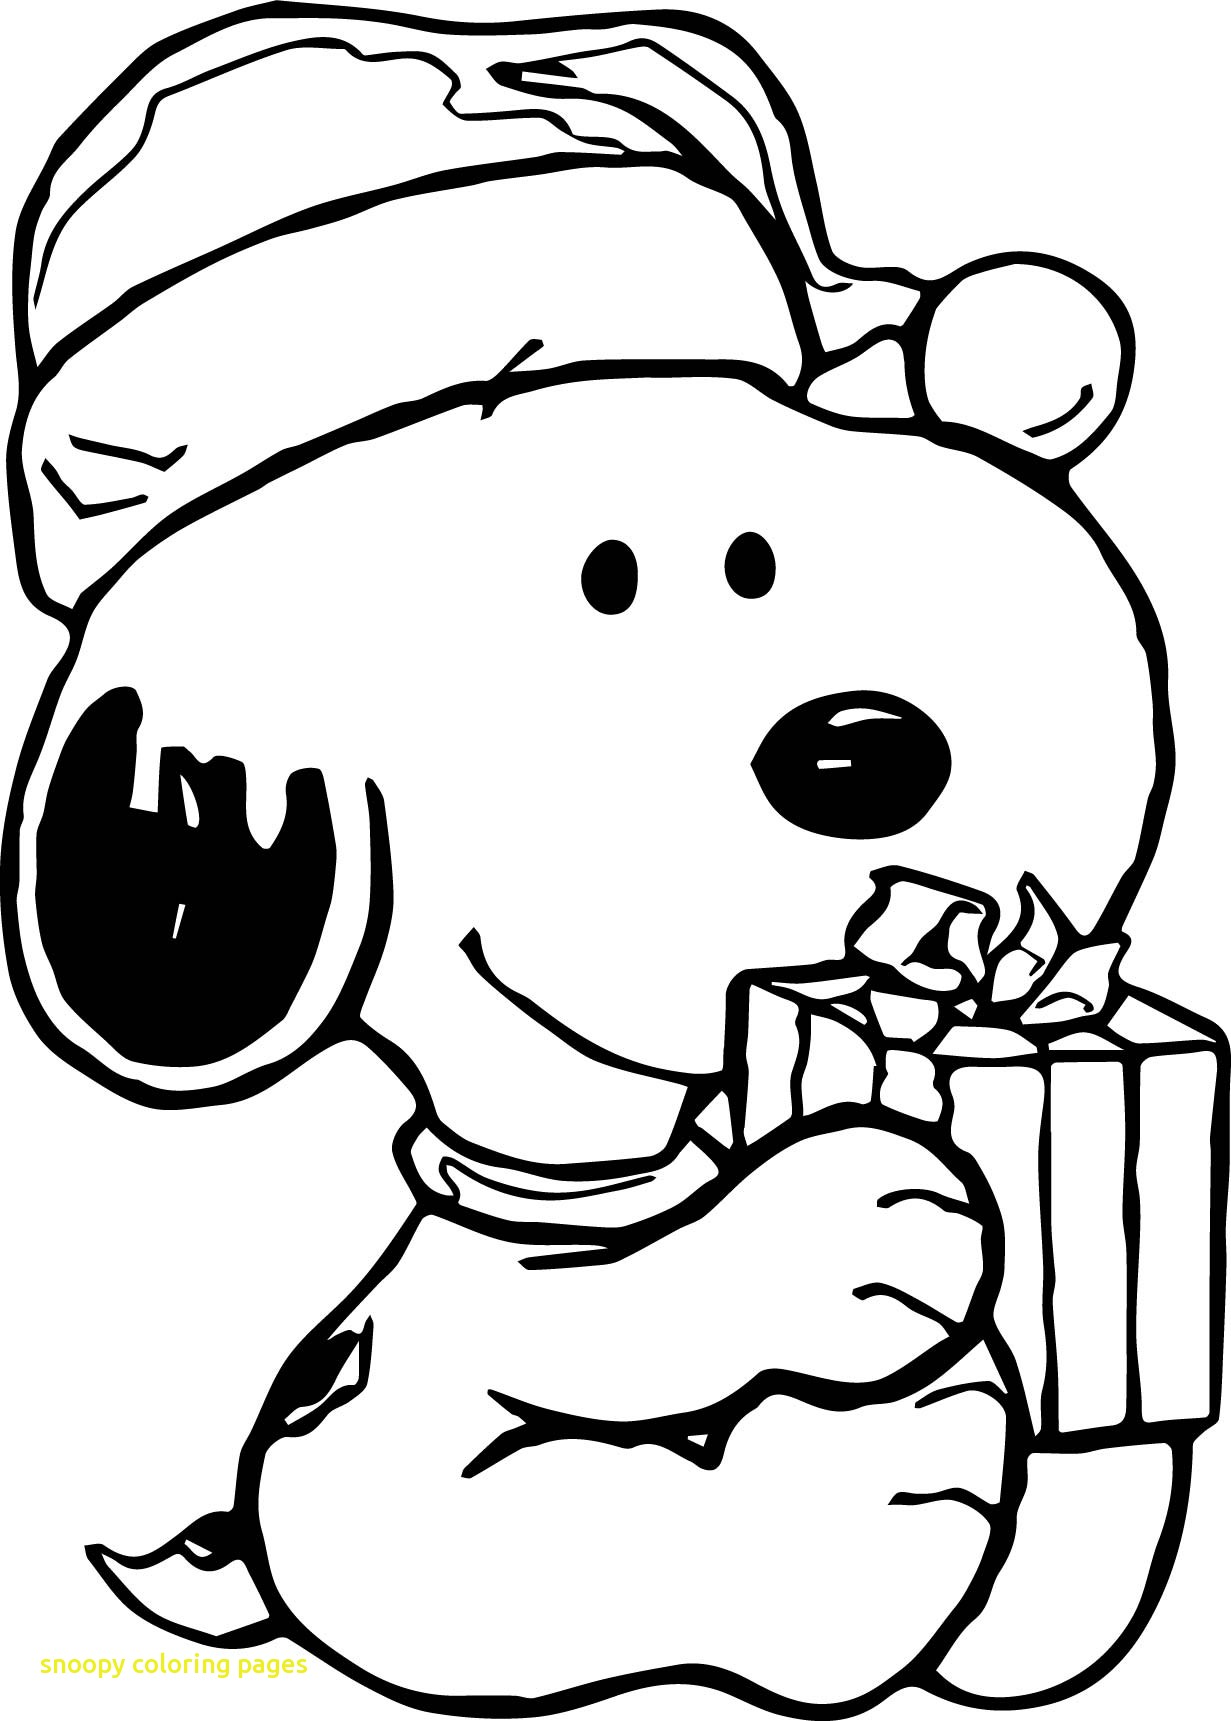 Snoopy coloring sheets